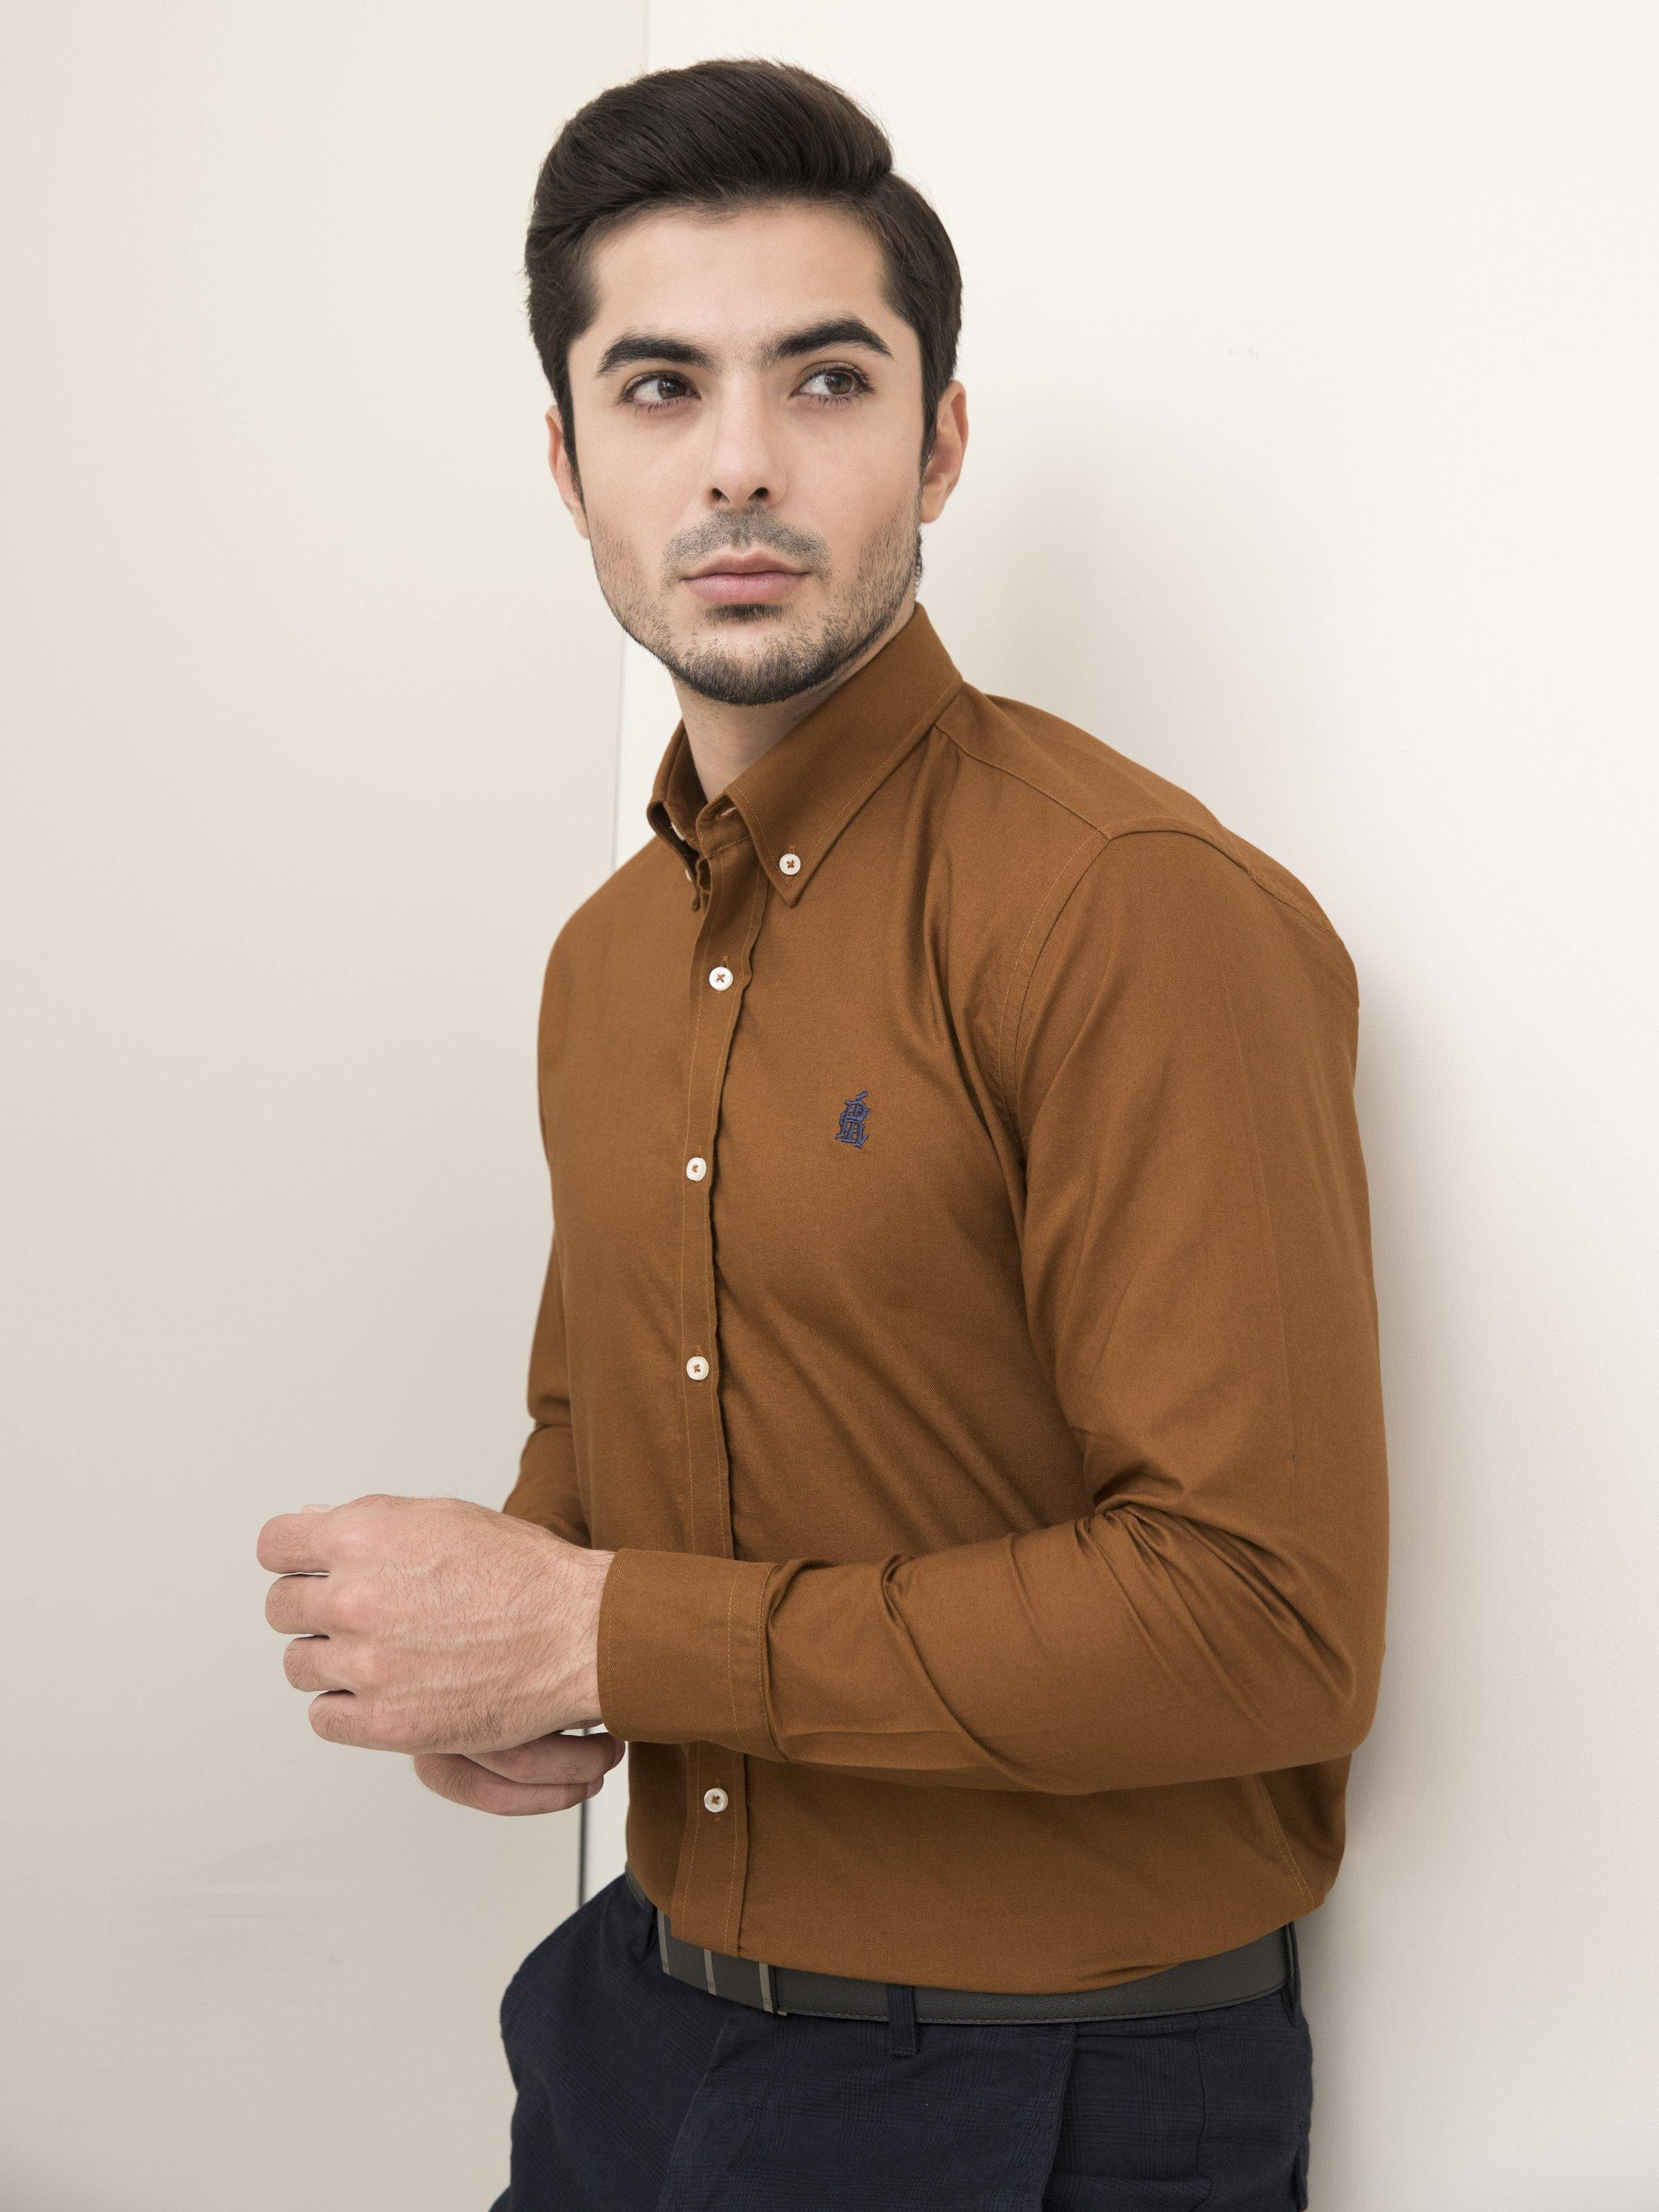 SMART SHIRT BUTTON DOWN FULL SLEEVE CAMEL - Charcoal